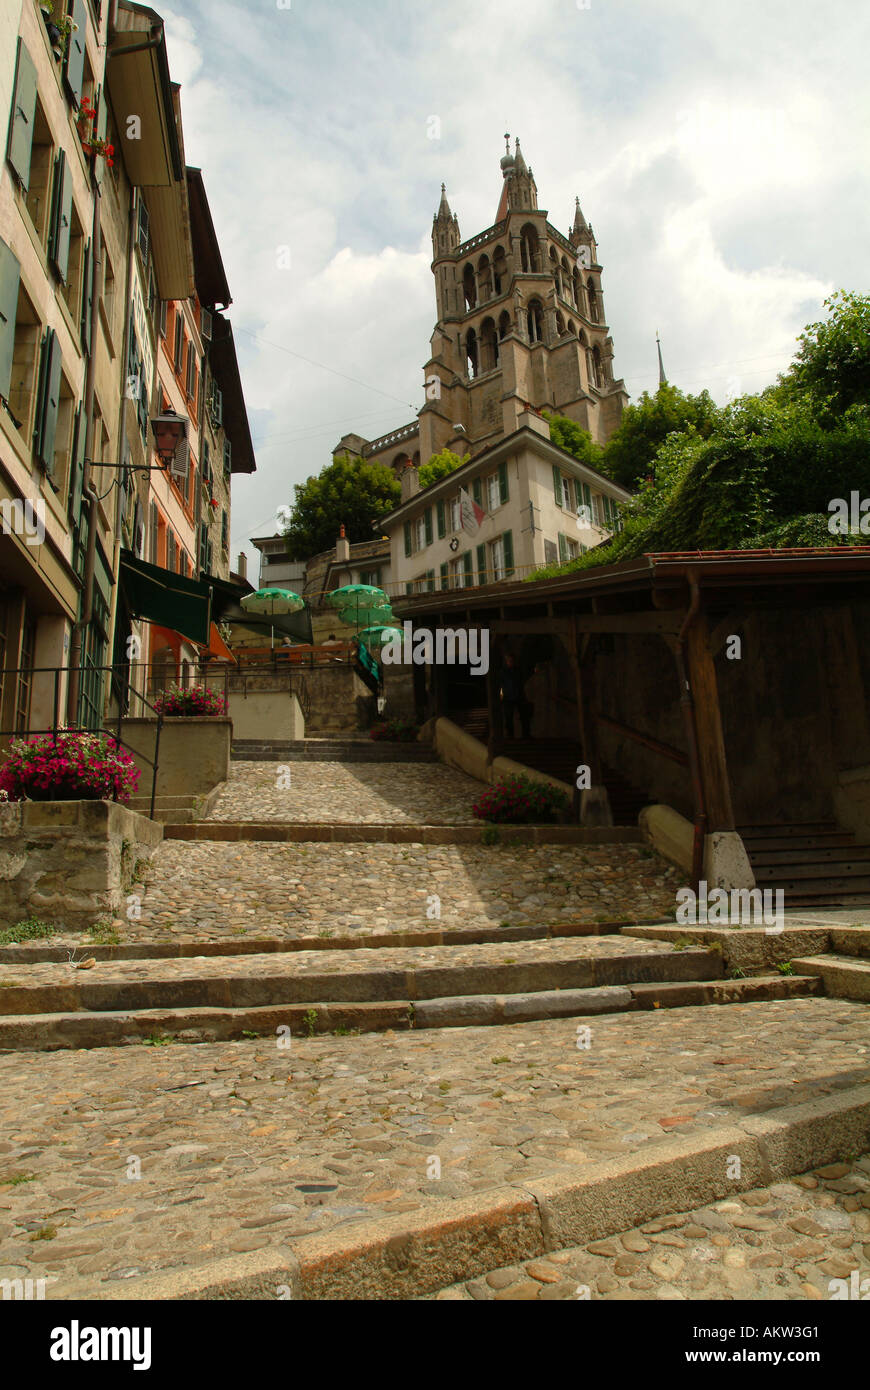 Lausanne. Escaliers du Marche. Wooden steps leading up to Notre Dame Cathedral. - Stock Image